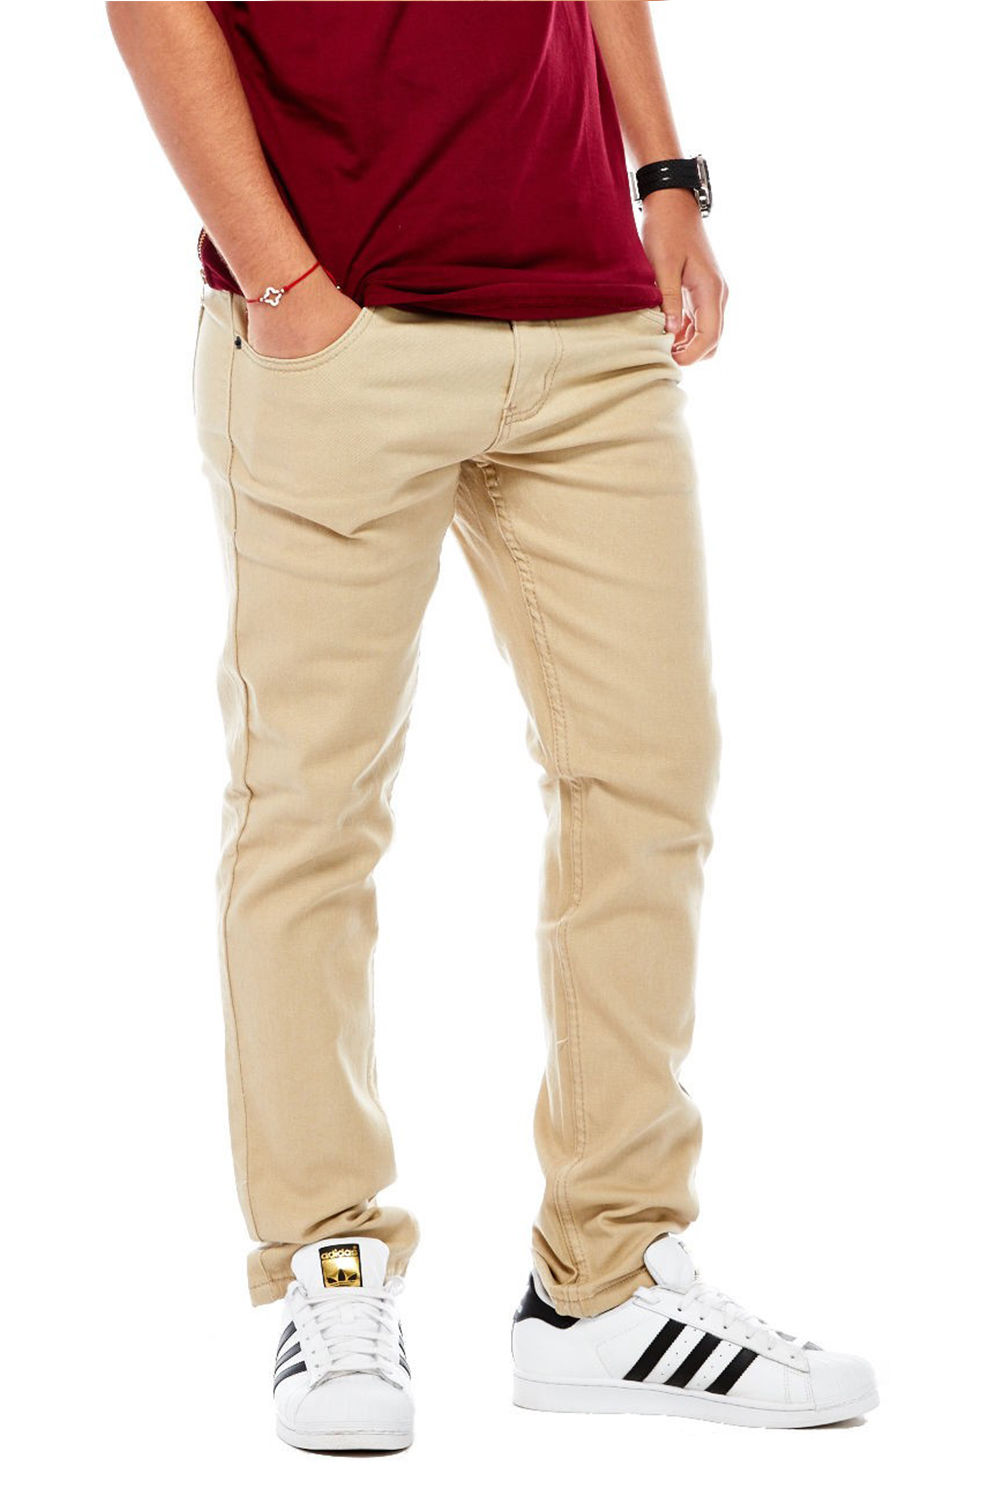 Victoriouse Mens Skinny Fit Denim Pants Jeans Brand Basic Slim Cut DL-937-28W x 30L-White